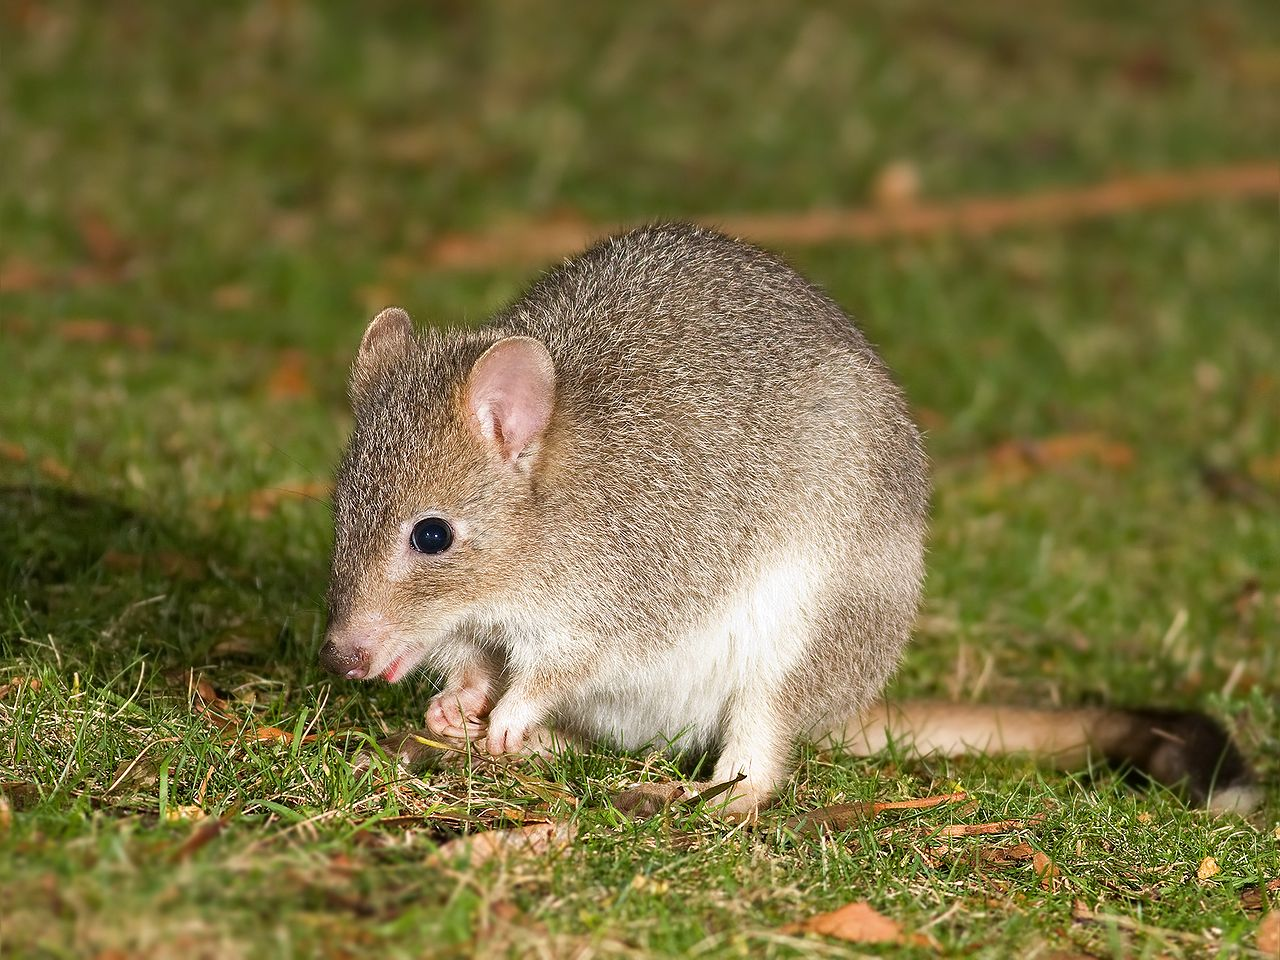 Near threatened: The Tasmanian Bettong (Bettongia gaimardi) is now part of a plan to save the species and restore a wider conservation area at Mulligans Flat. – Image Credit:  Wikimedia/JJ Harrison